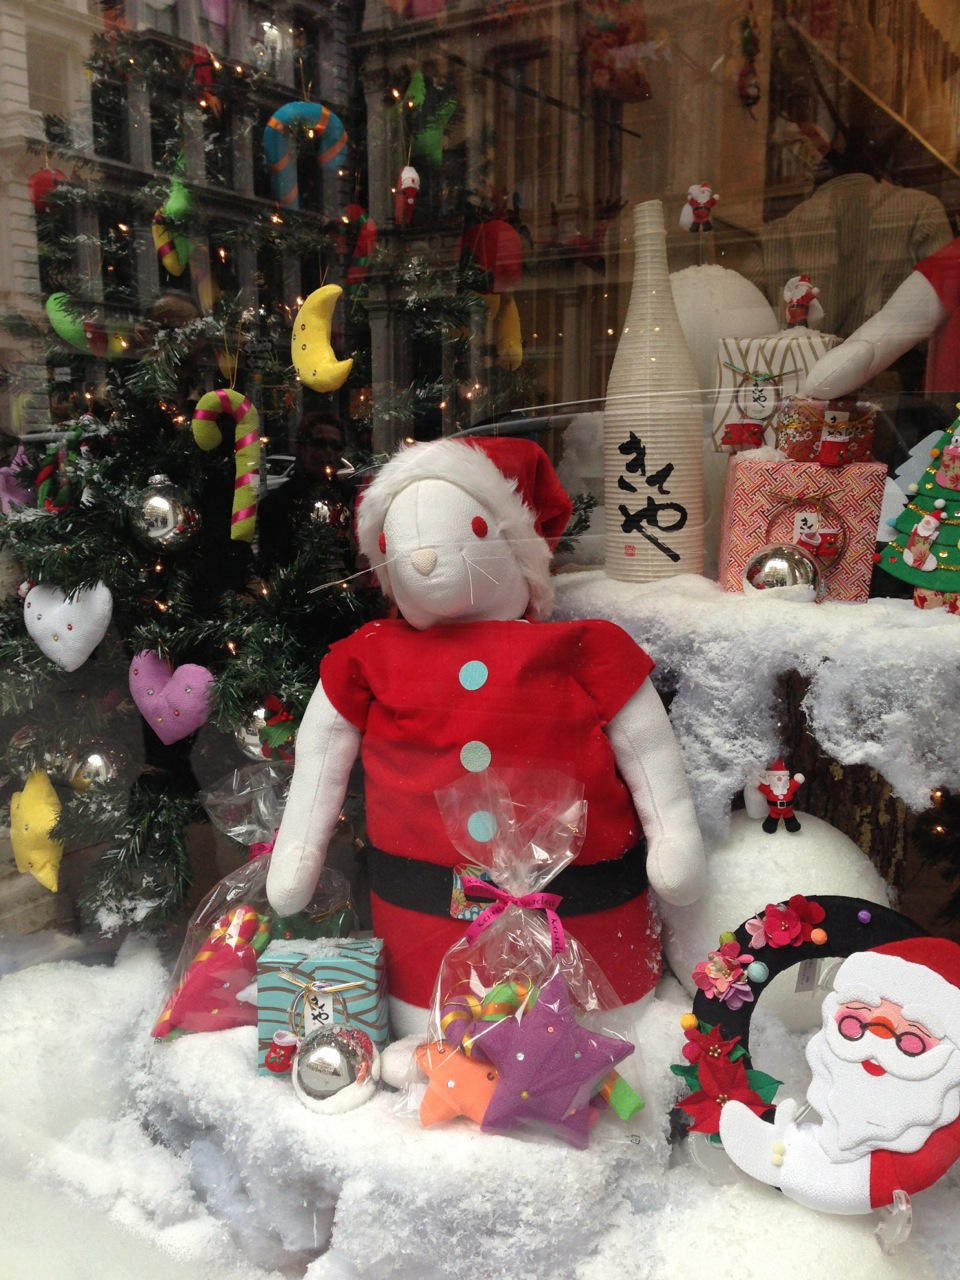 Kiteya Christmas storefront & 2013 Holiday Guide to Japanese Shopping in New York | JapanCulture\u2022NYC